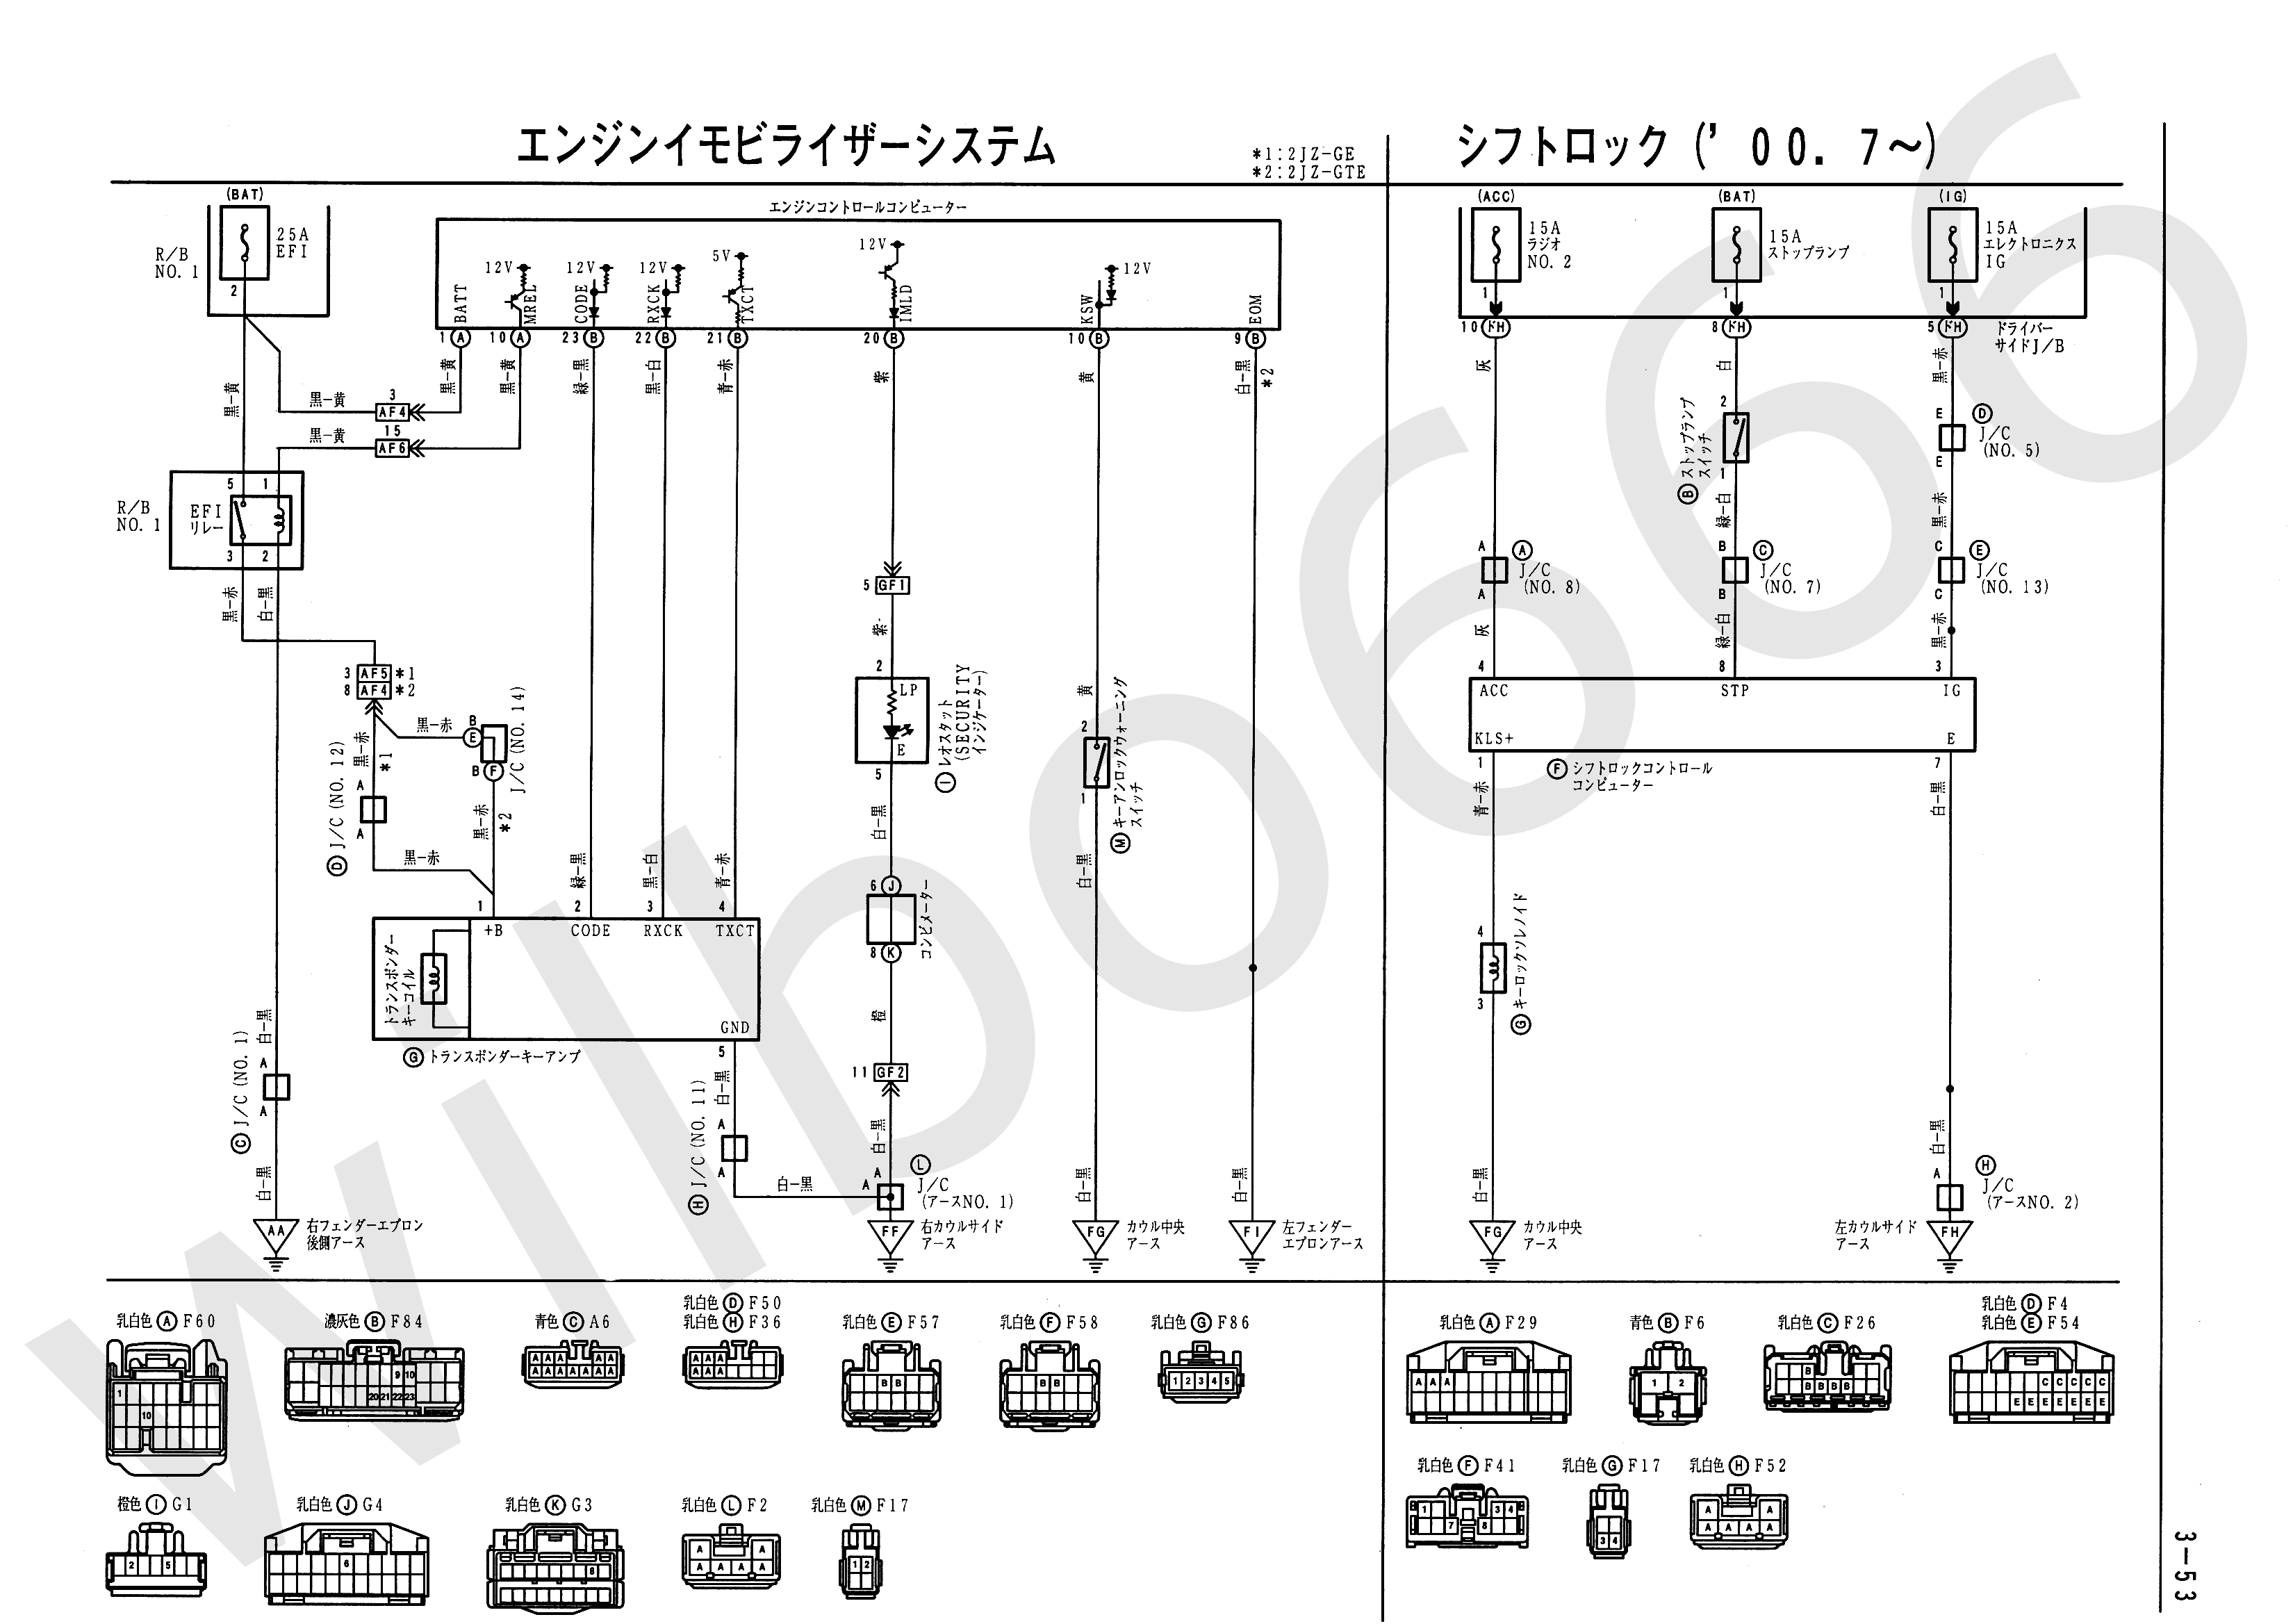 JZS161 Electrical Wiring Diagram 6748505 3 53 apexi vafc wiring diagram apexi vafc wiring diagram at creativeand.co